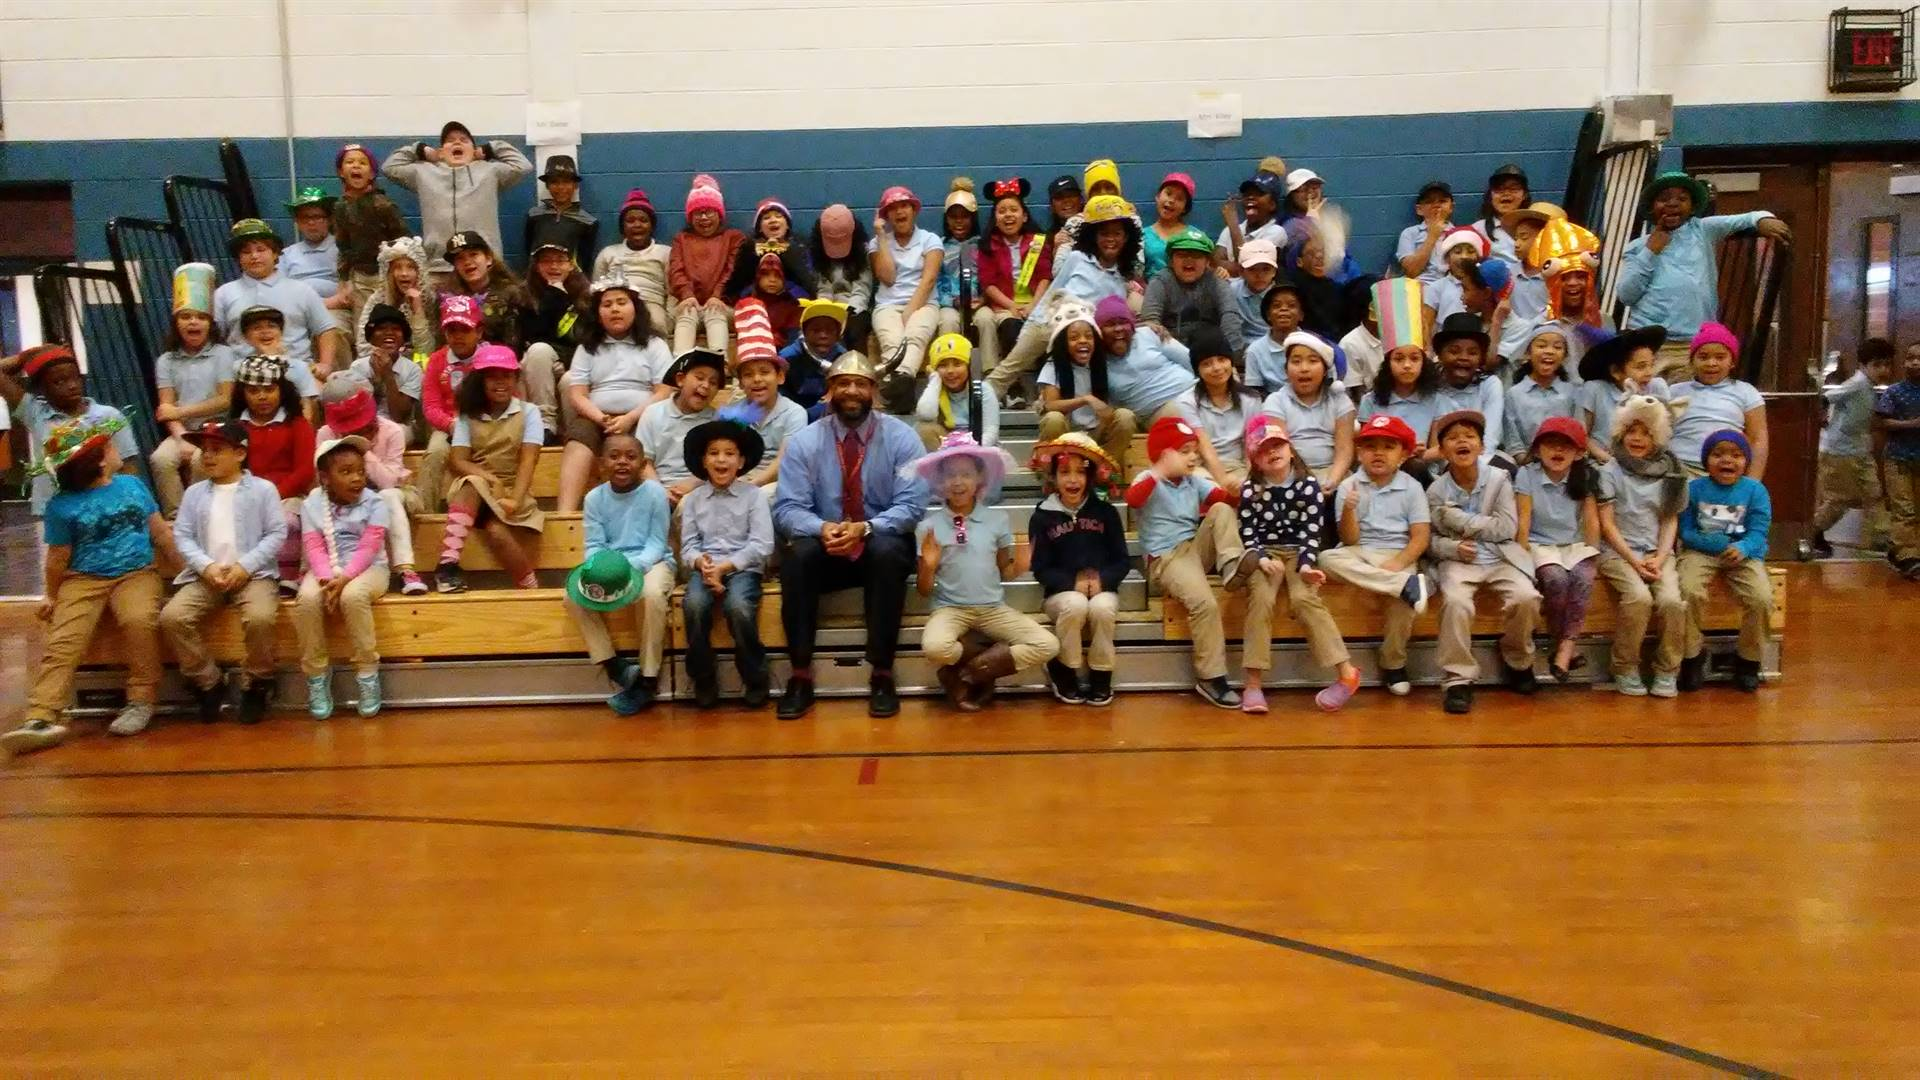 Hat Day at Mott